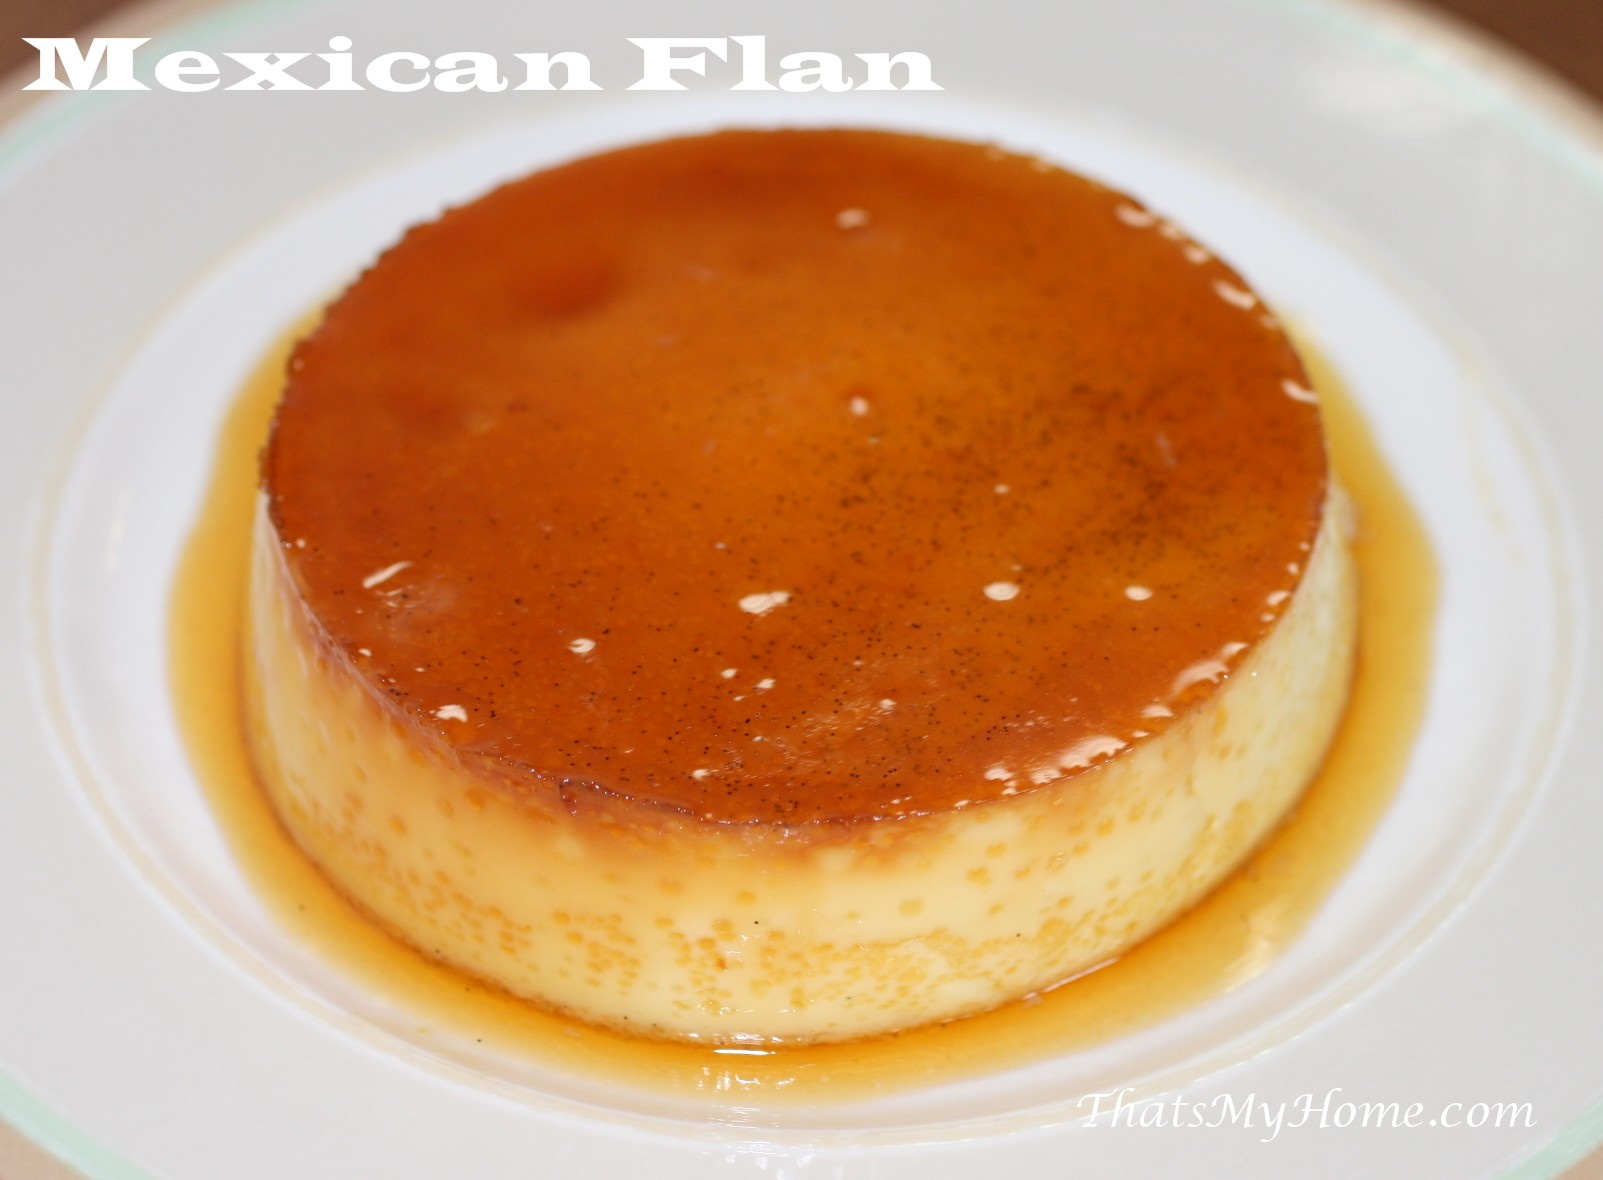 flan chestnut flan coconut flan orange flan baked flan spanish flan ...